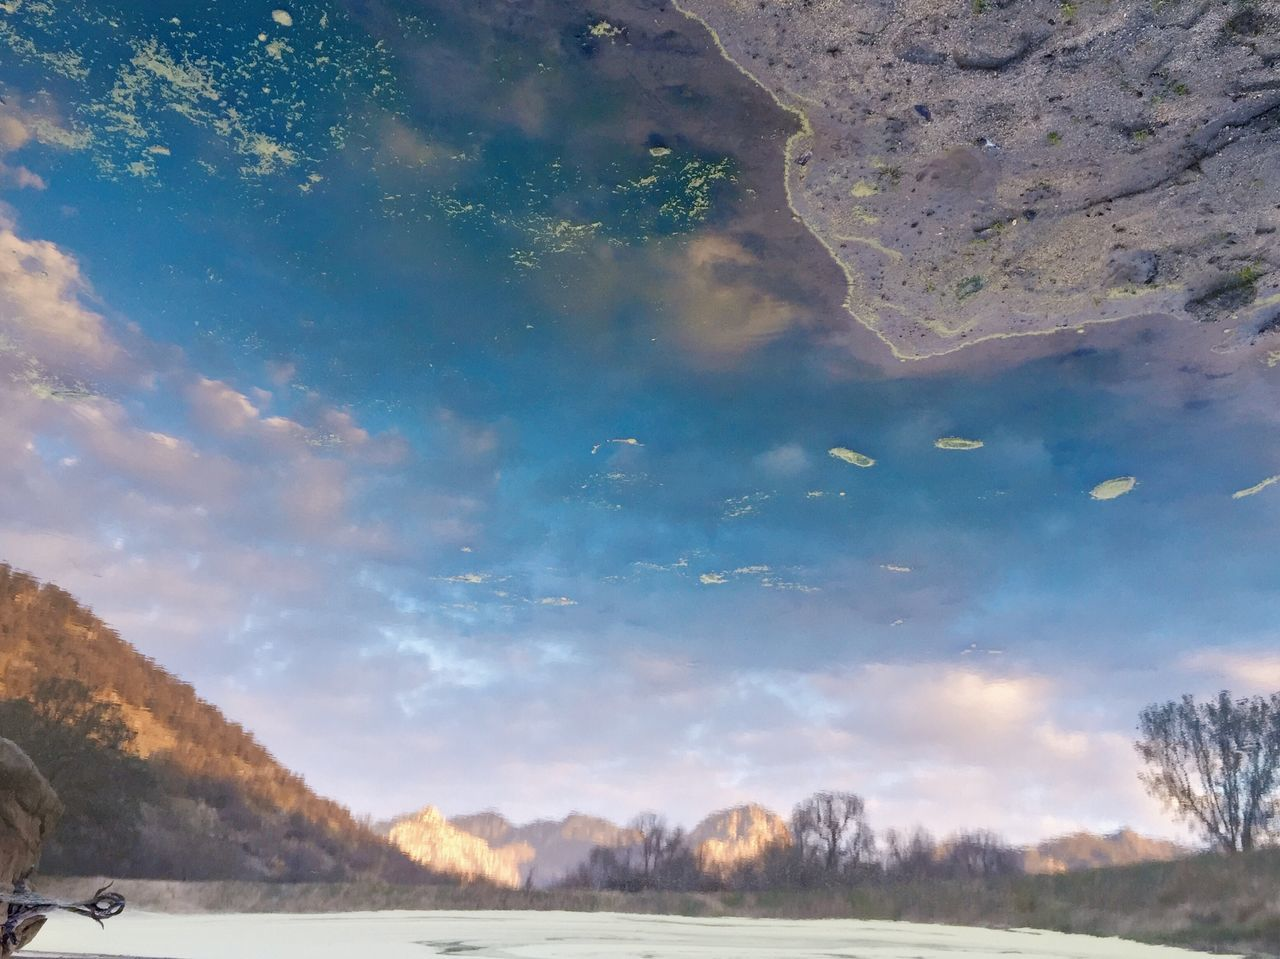 Reflection Of Mountains Against Sky On Calm Lake During Winter